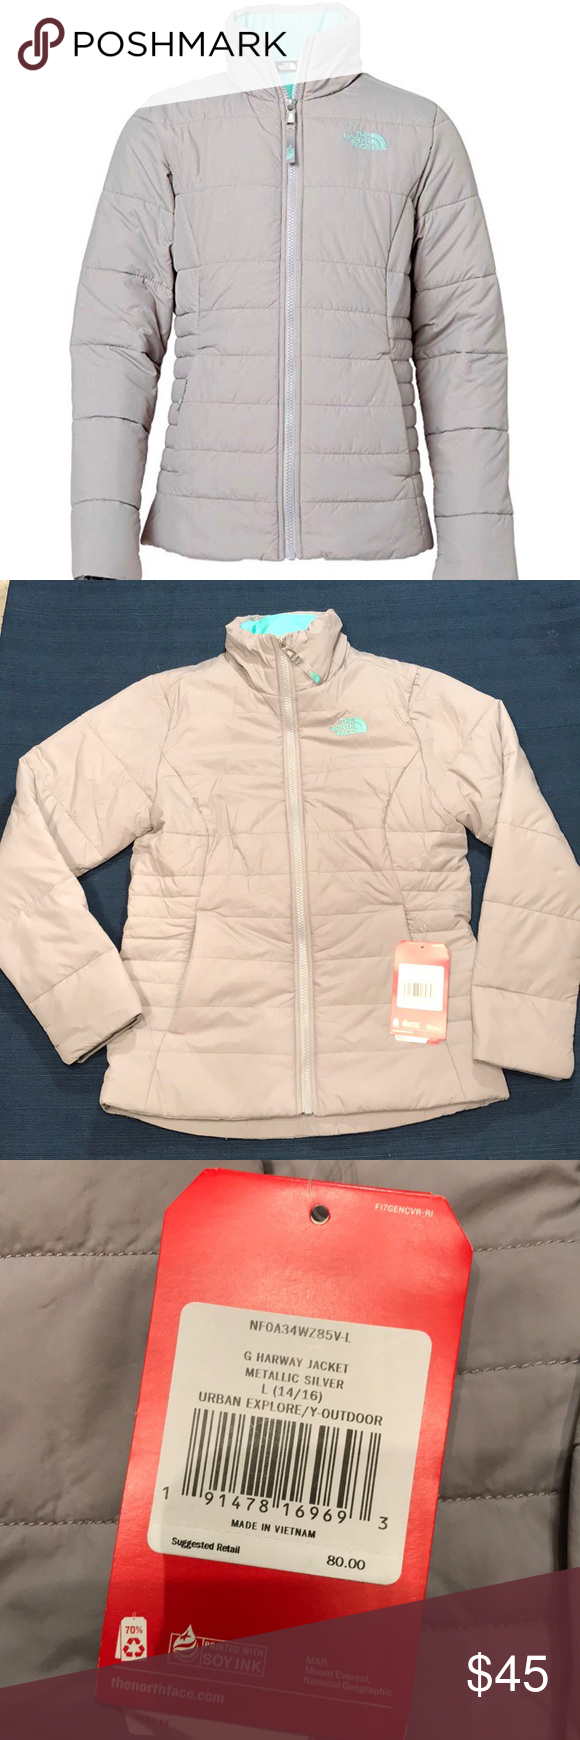 ac5209a64 The North Face Girl HarWay Insulated Jacket Large Youth large 14/16 ...